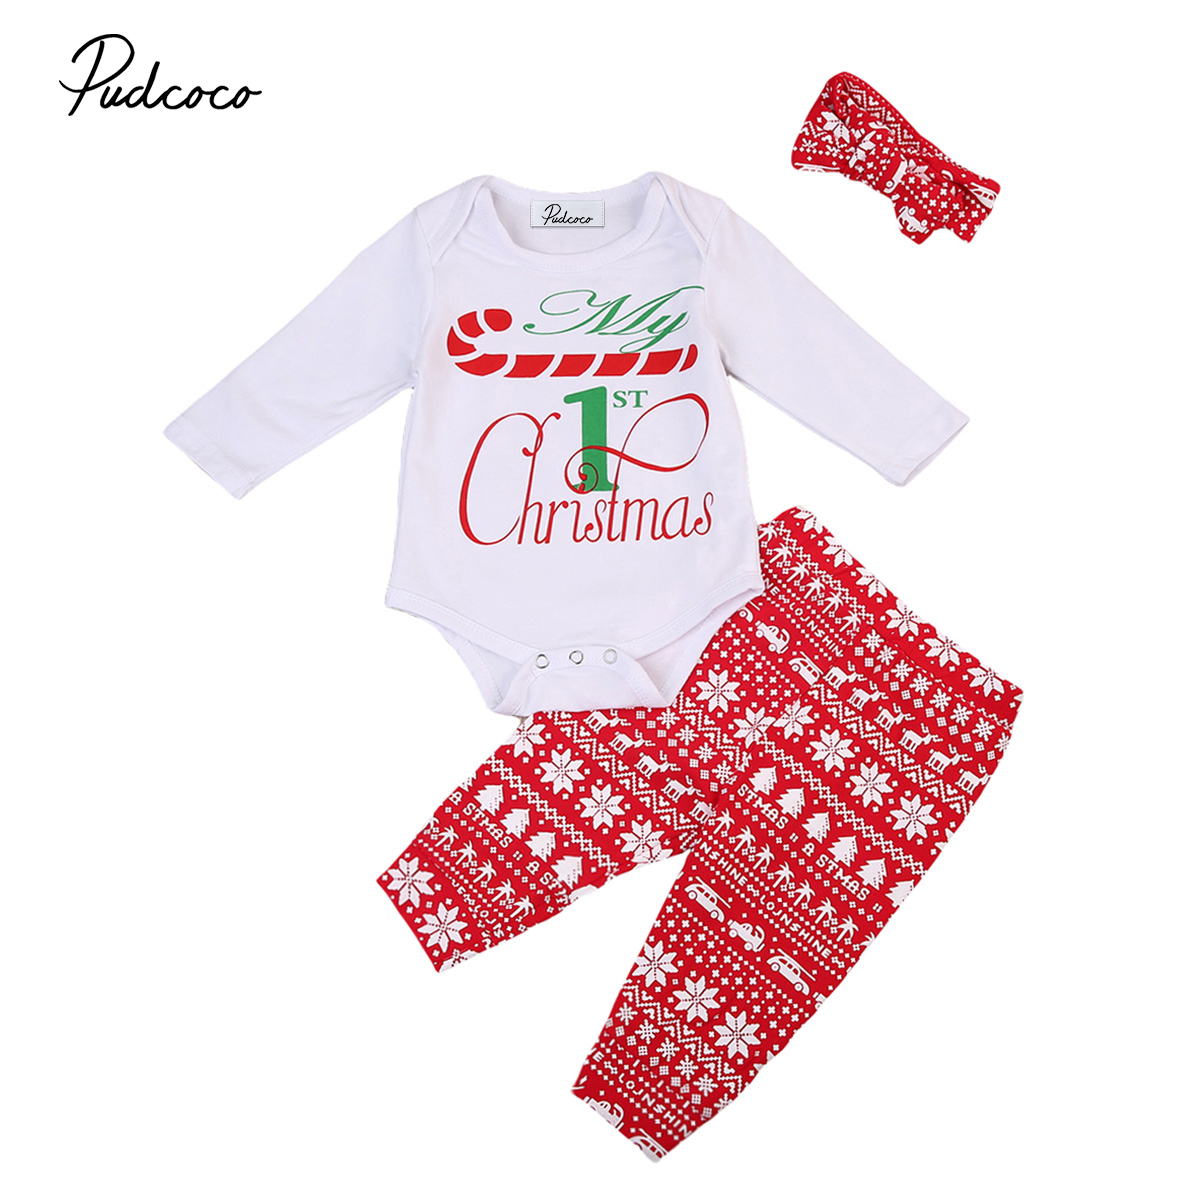 3pcs christmas baby clothes set Newborn Infant Baby Boy Girl letter white Romper+red pants+headband Jumpsuit xmas baby outfits